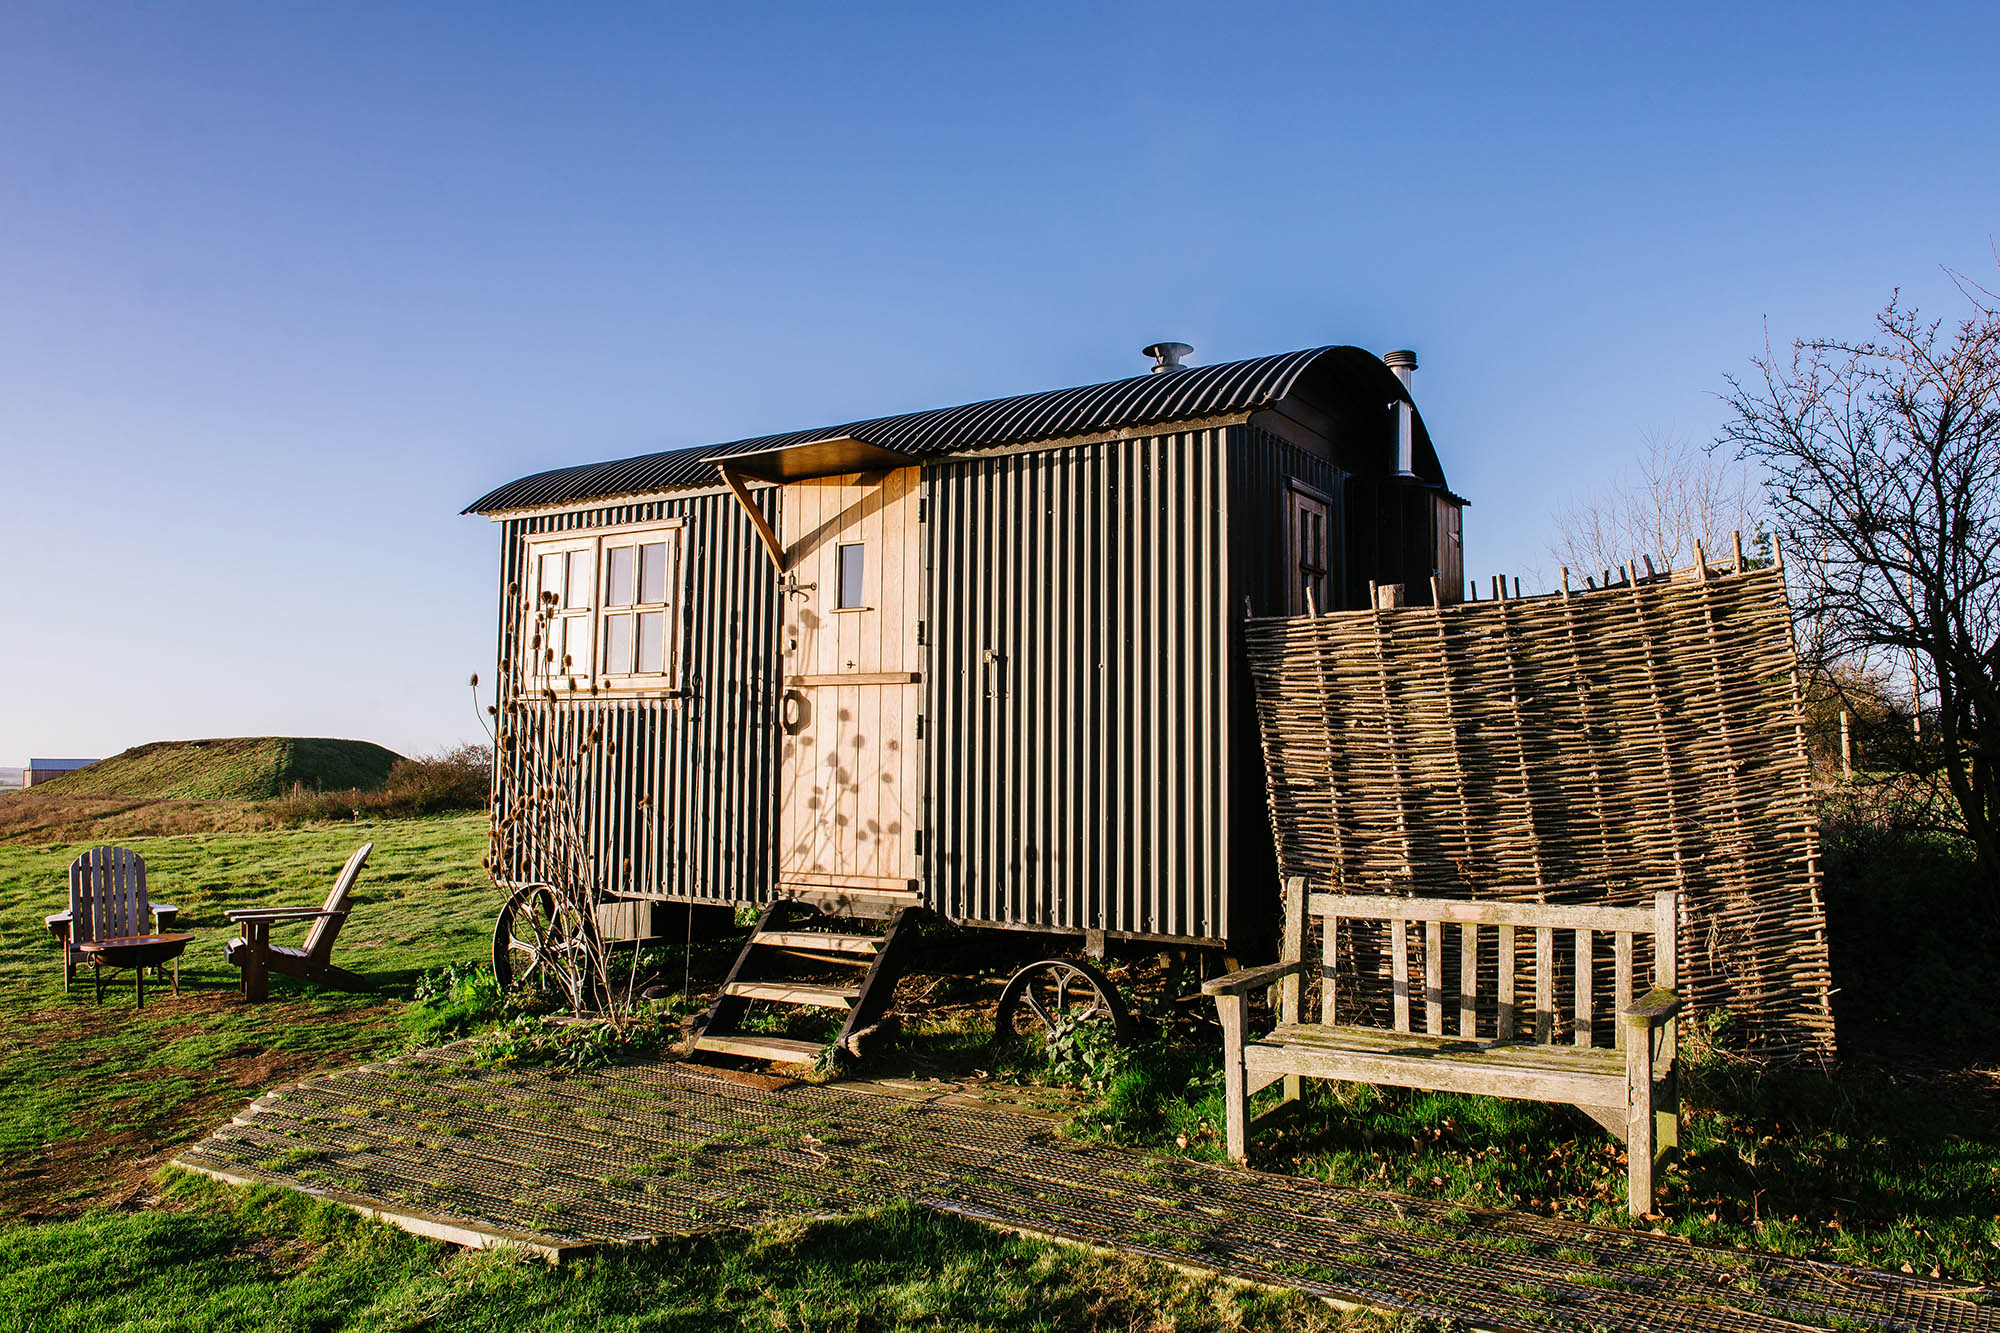 Elmley - our cosy stay in a Shepherds Hut surrounded by nature